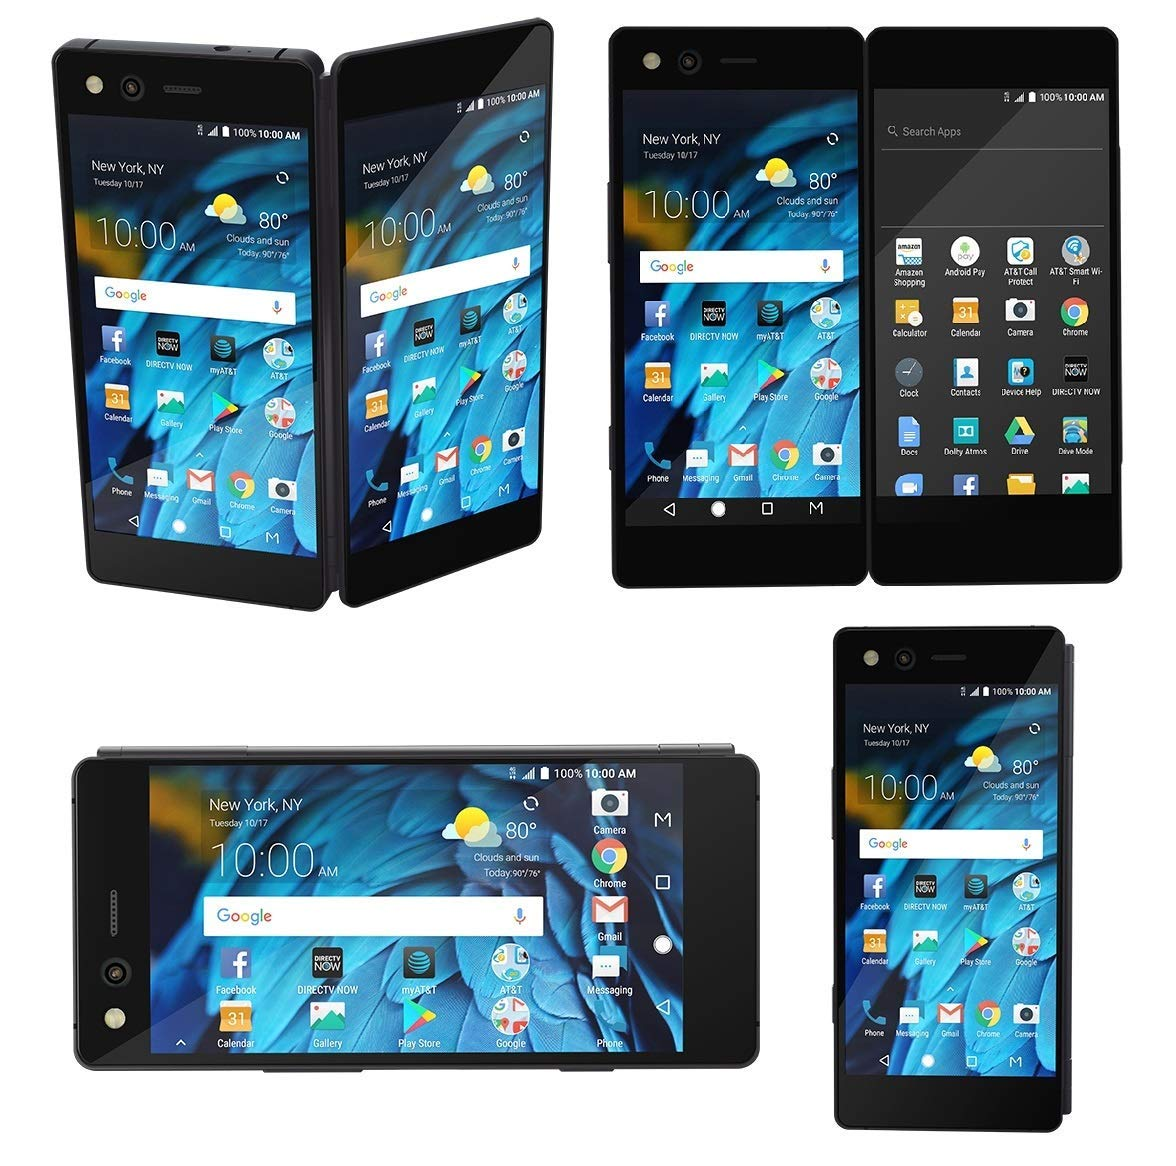 Axon M ZTE Z999 64GB AT&T GSM Unlocked Dual Screen Smartphone - Carbon Black (Certified Pre-Owned )